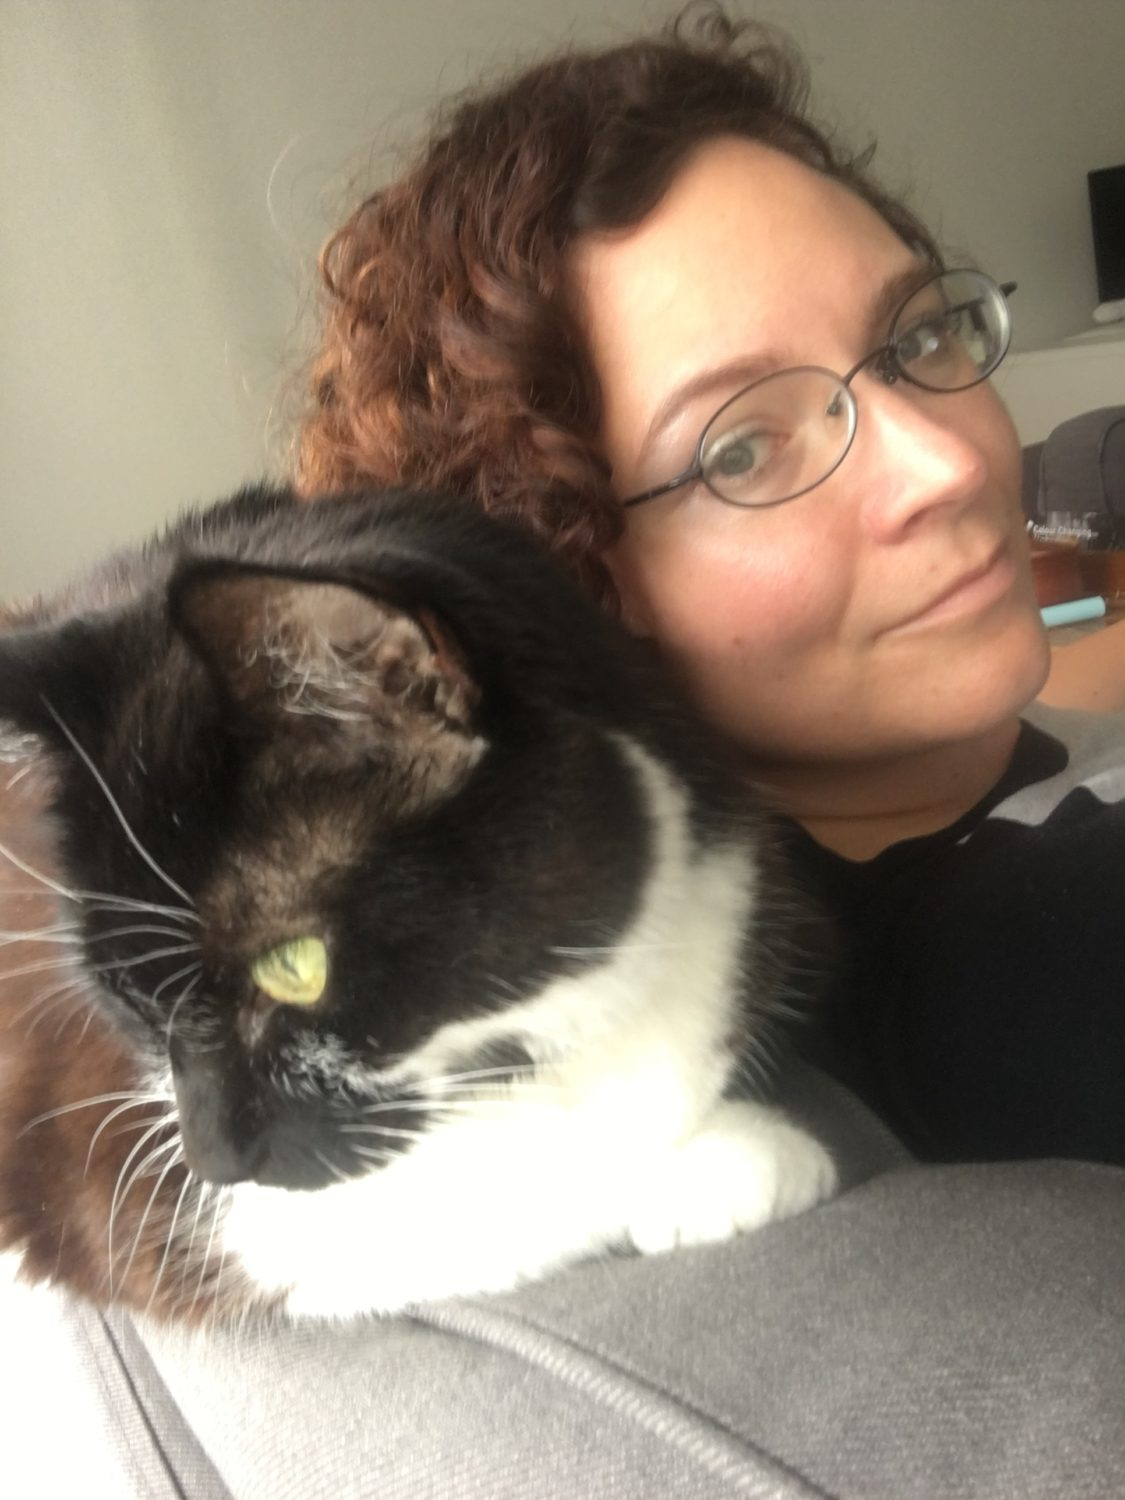 A photograph of a white woman with curly brown hair looks fondly over her shoulder at Finn, a tuxedo cat